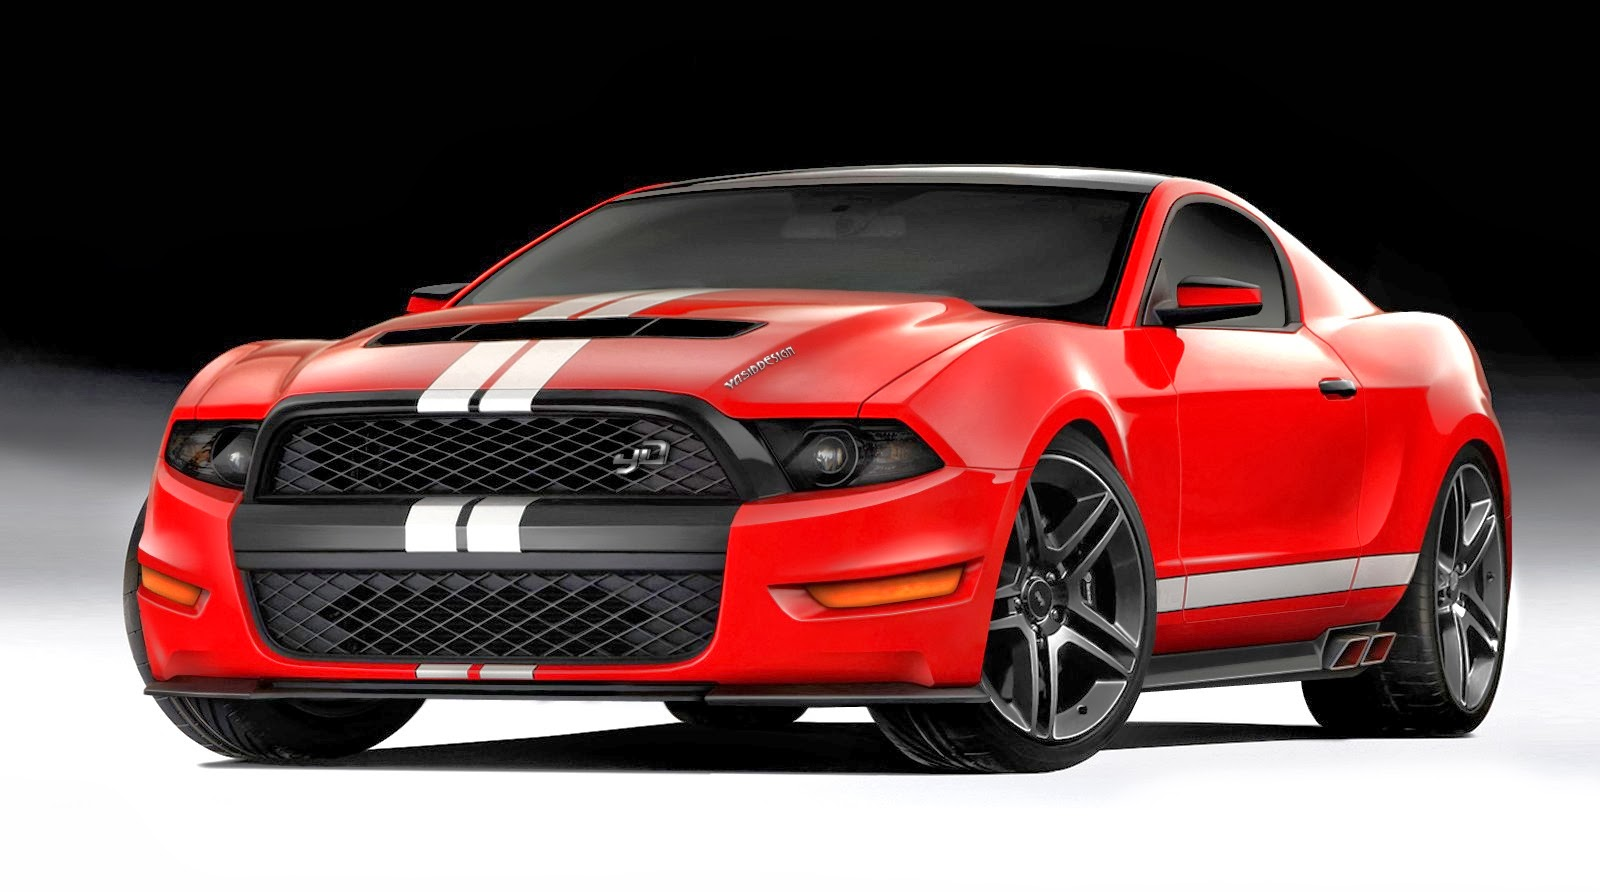 HD Wallpapers: Cars Wallpapers 2014